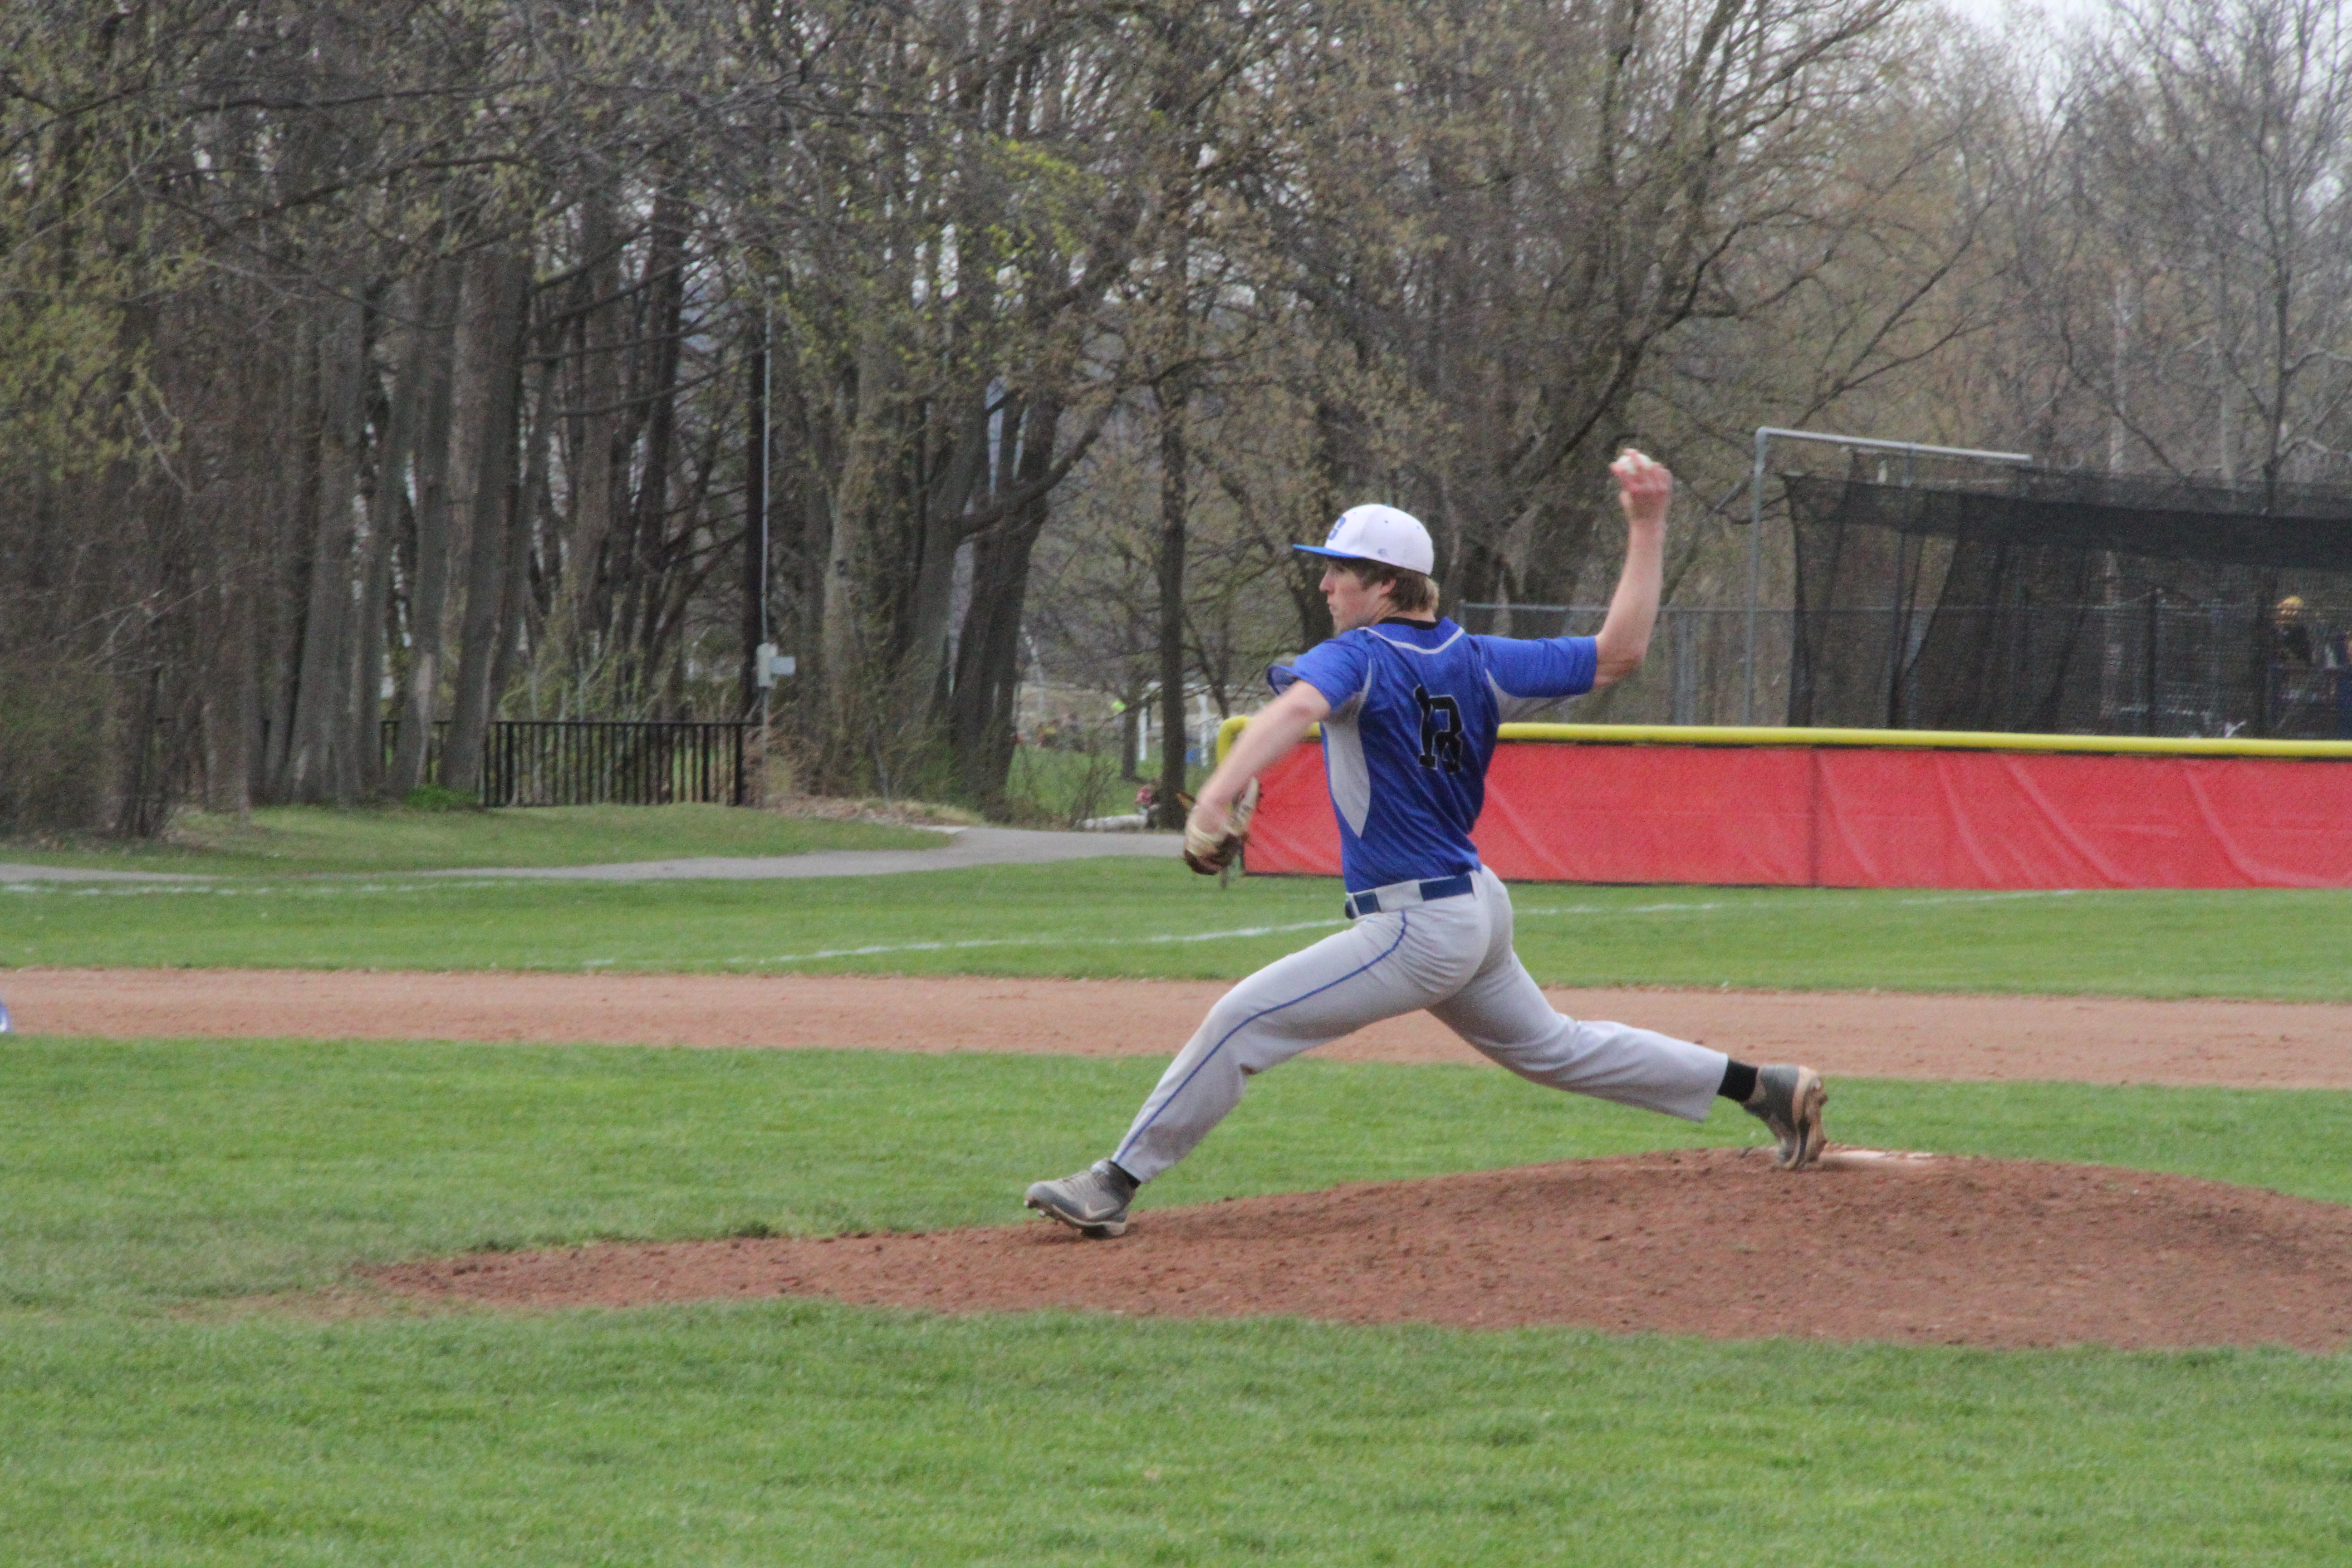 Baseball: Phelps cruises to two-hitter in Geneseo win